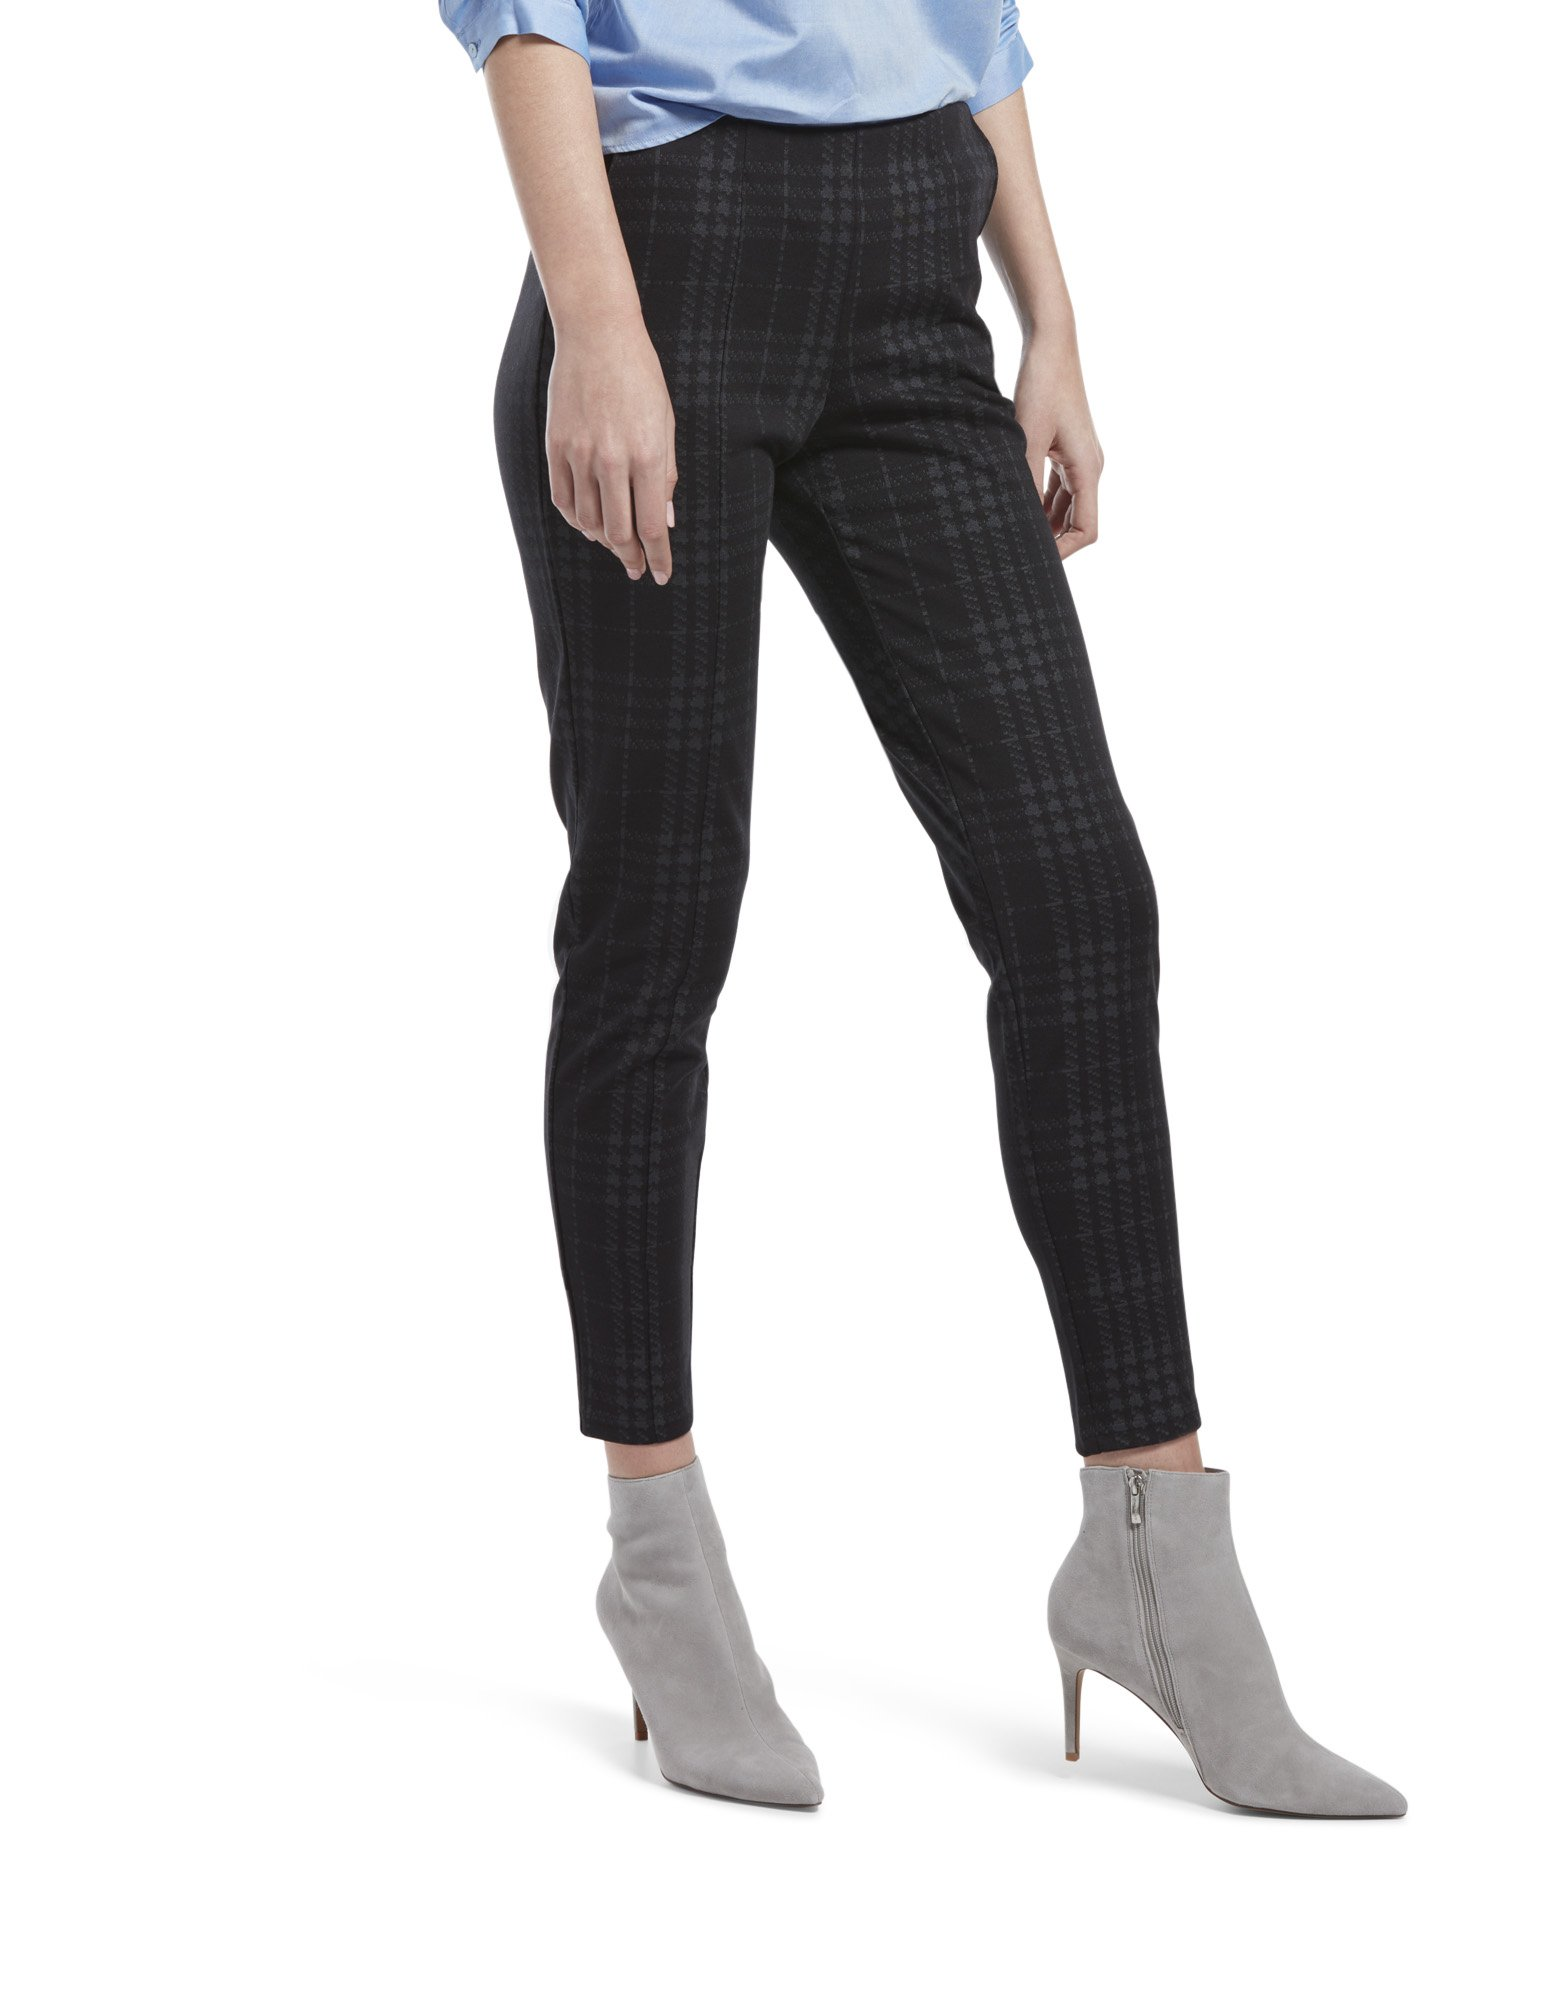 HUE Women's Plus Size Seamed Luxe Ponte Skimmer Legging, Black - Printed Plaid, 1X by HUE